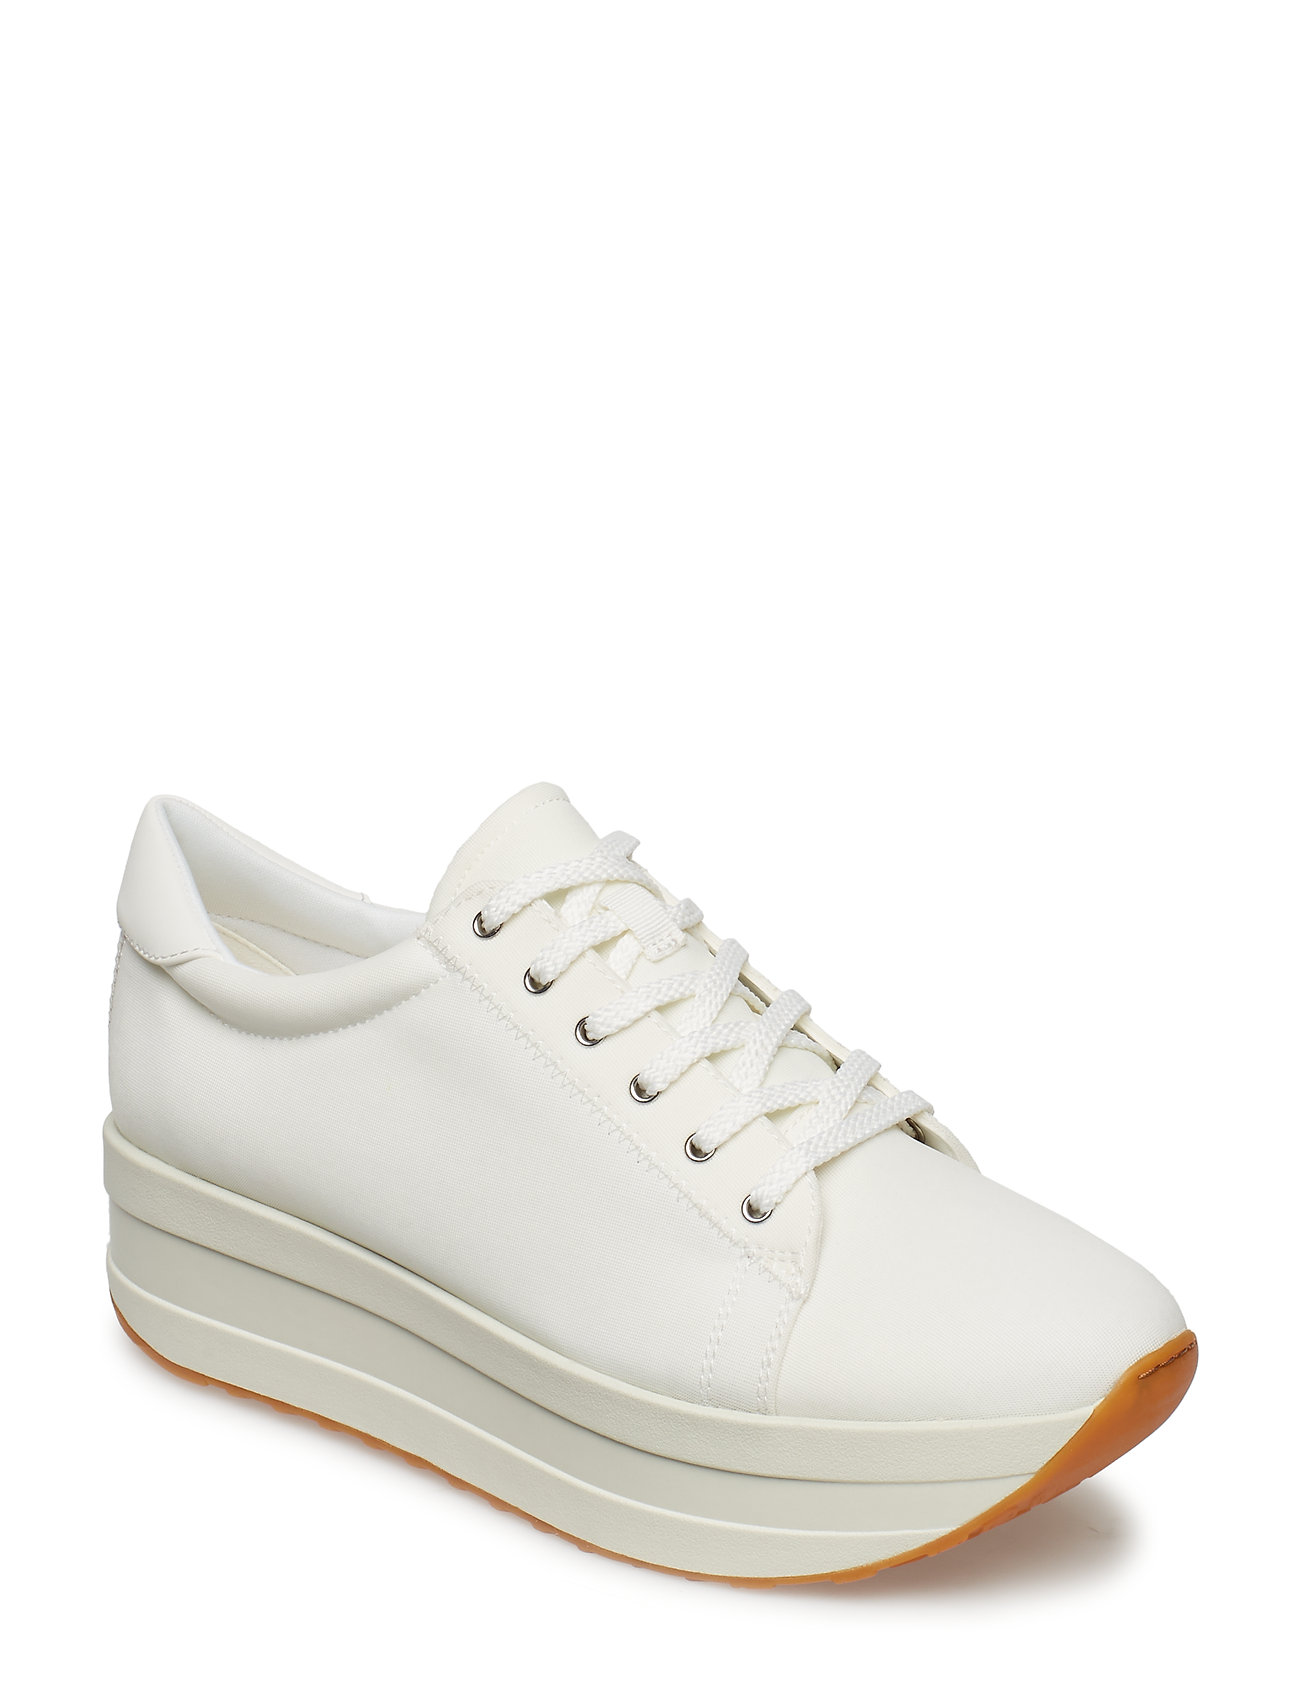 23b99692a72 Sort VAGABOND Casey sneakers for dame - Pashion.dk